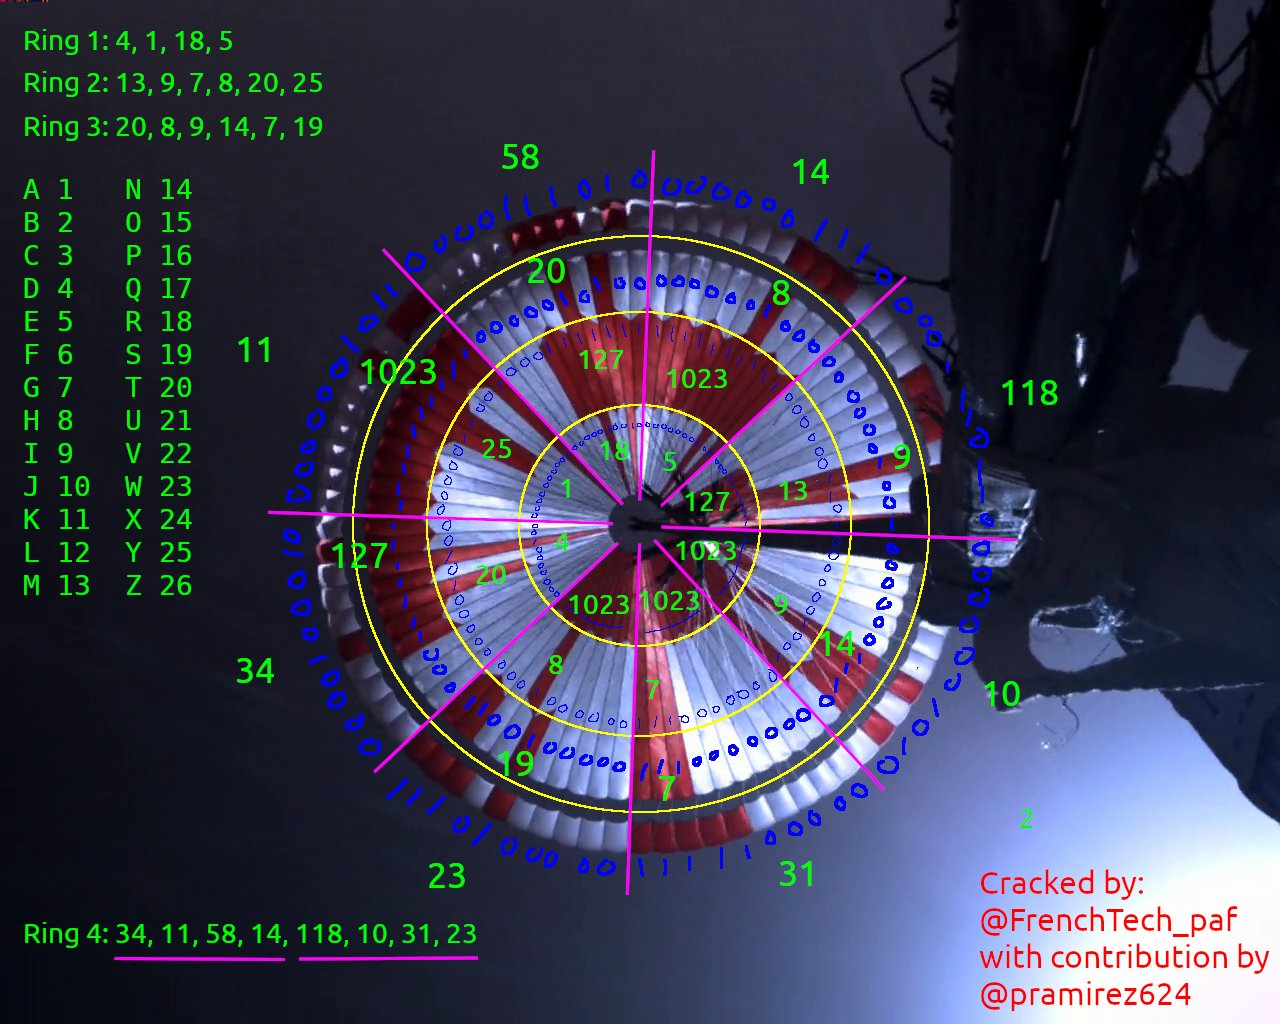 A partial explanation of the code hidden in the Perseverance parachute, decrypted by Maxence Abela. [@meithan42 - Twitter]